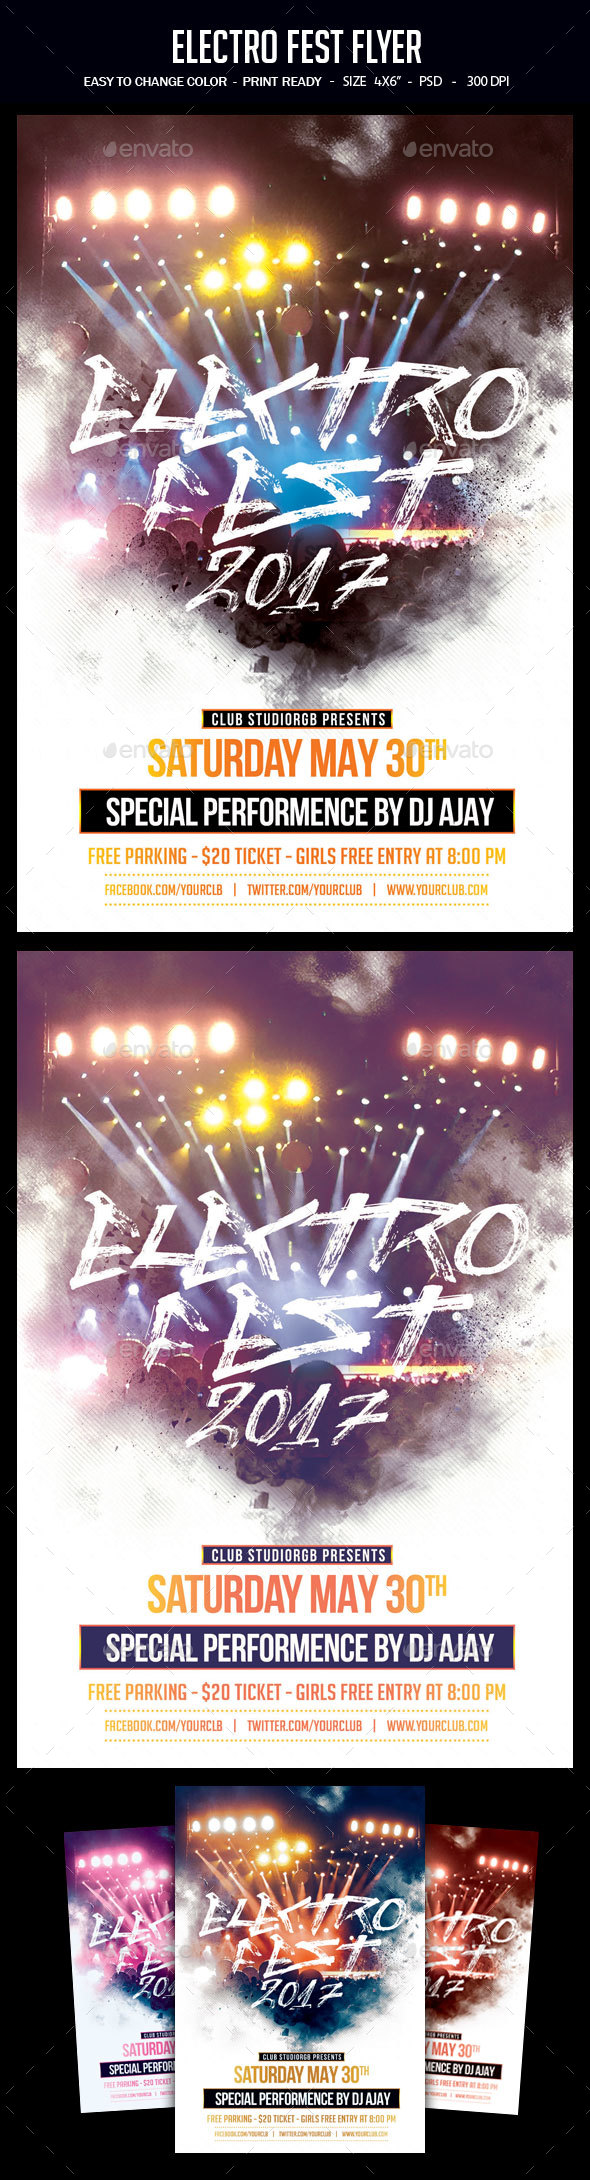 Electro Fest Flyer - Clubs & Parties Events